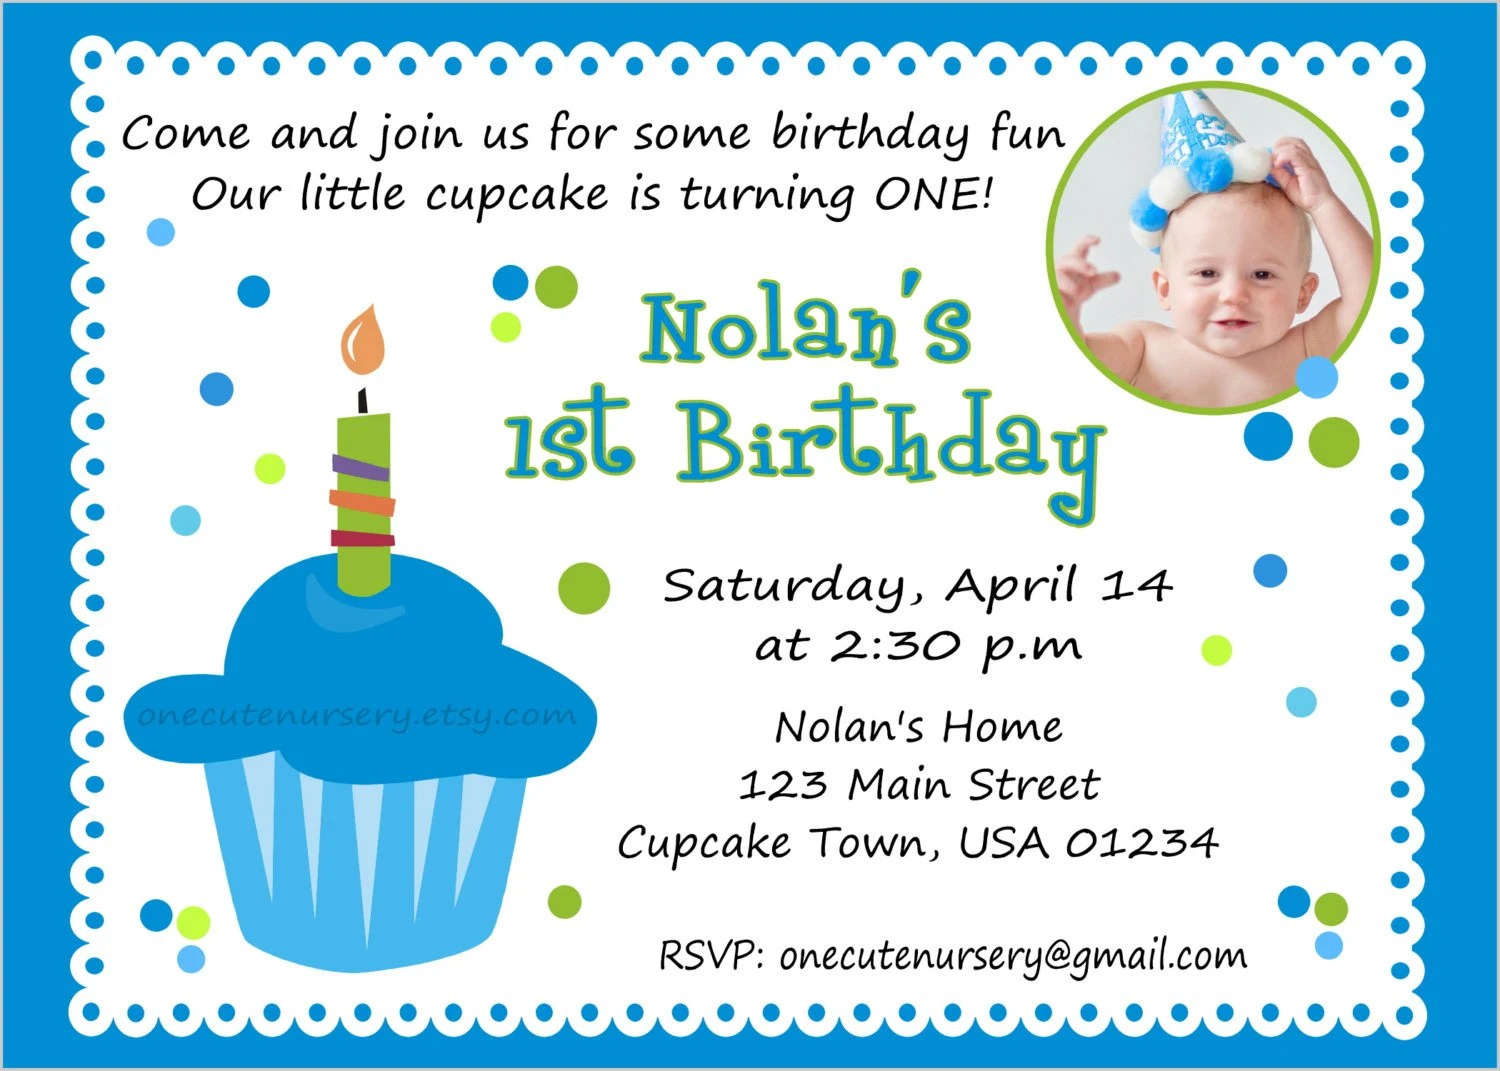 Invitation letter format for new born baby create professional invitation letter format for new born baby newborn invitations announcements zazzle birthday party invitation template free stopboris Choice Image